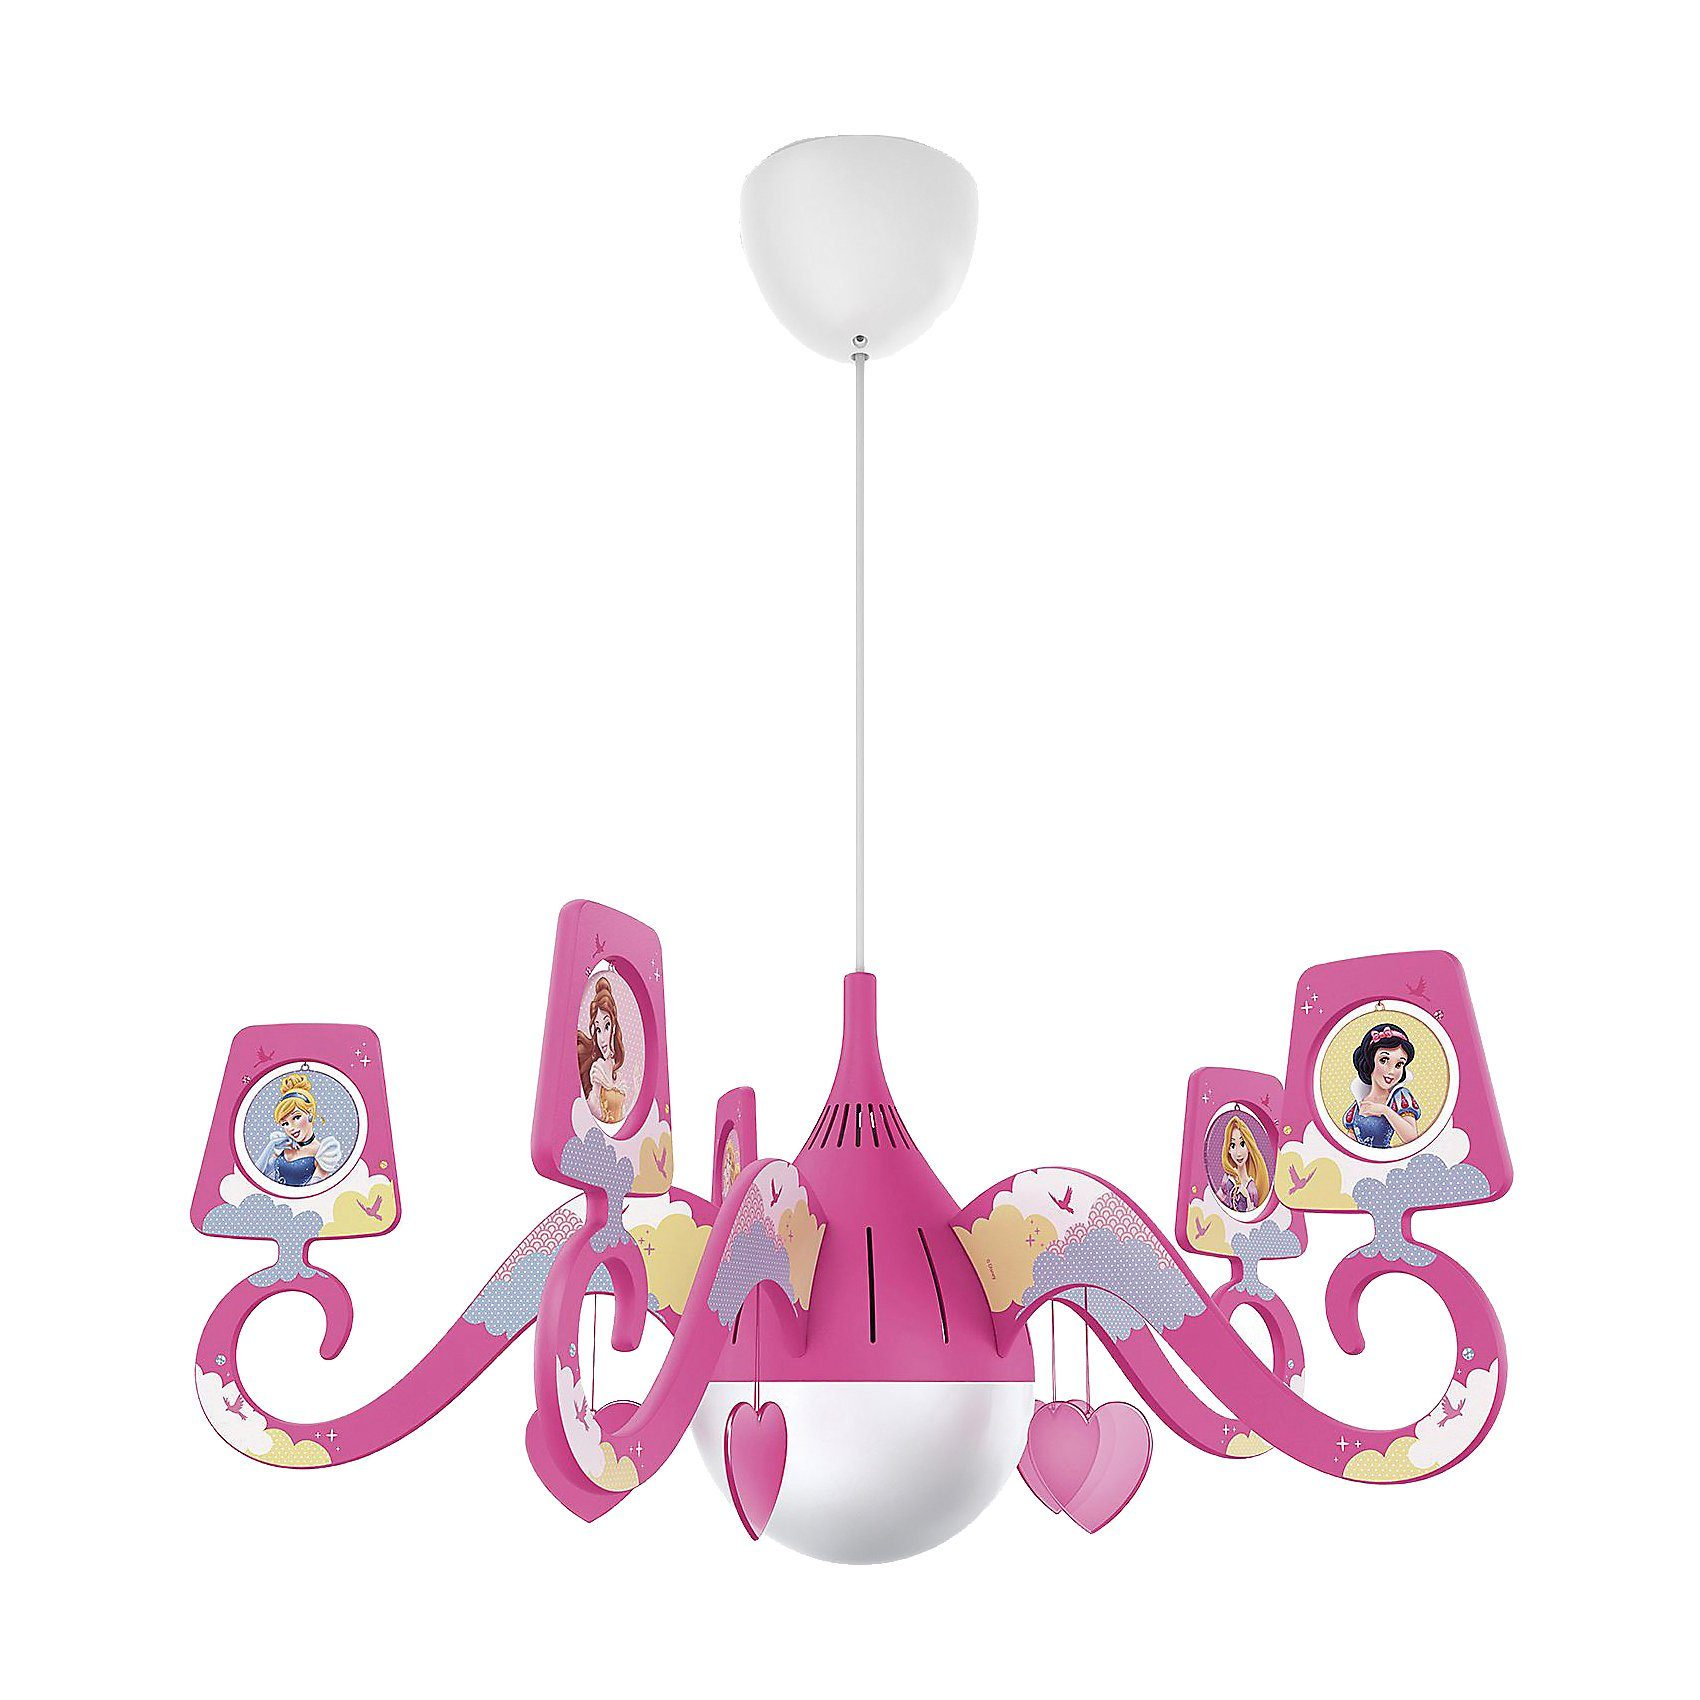 Philips Lighting Hängelampe, Disney Princess